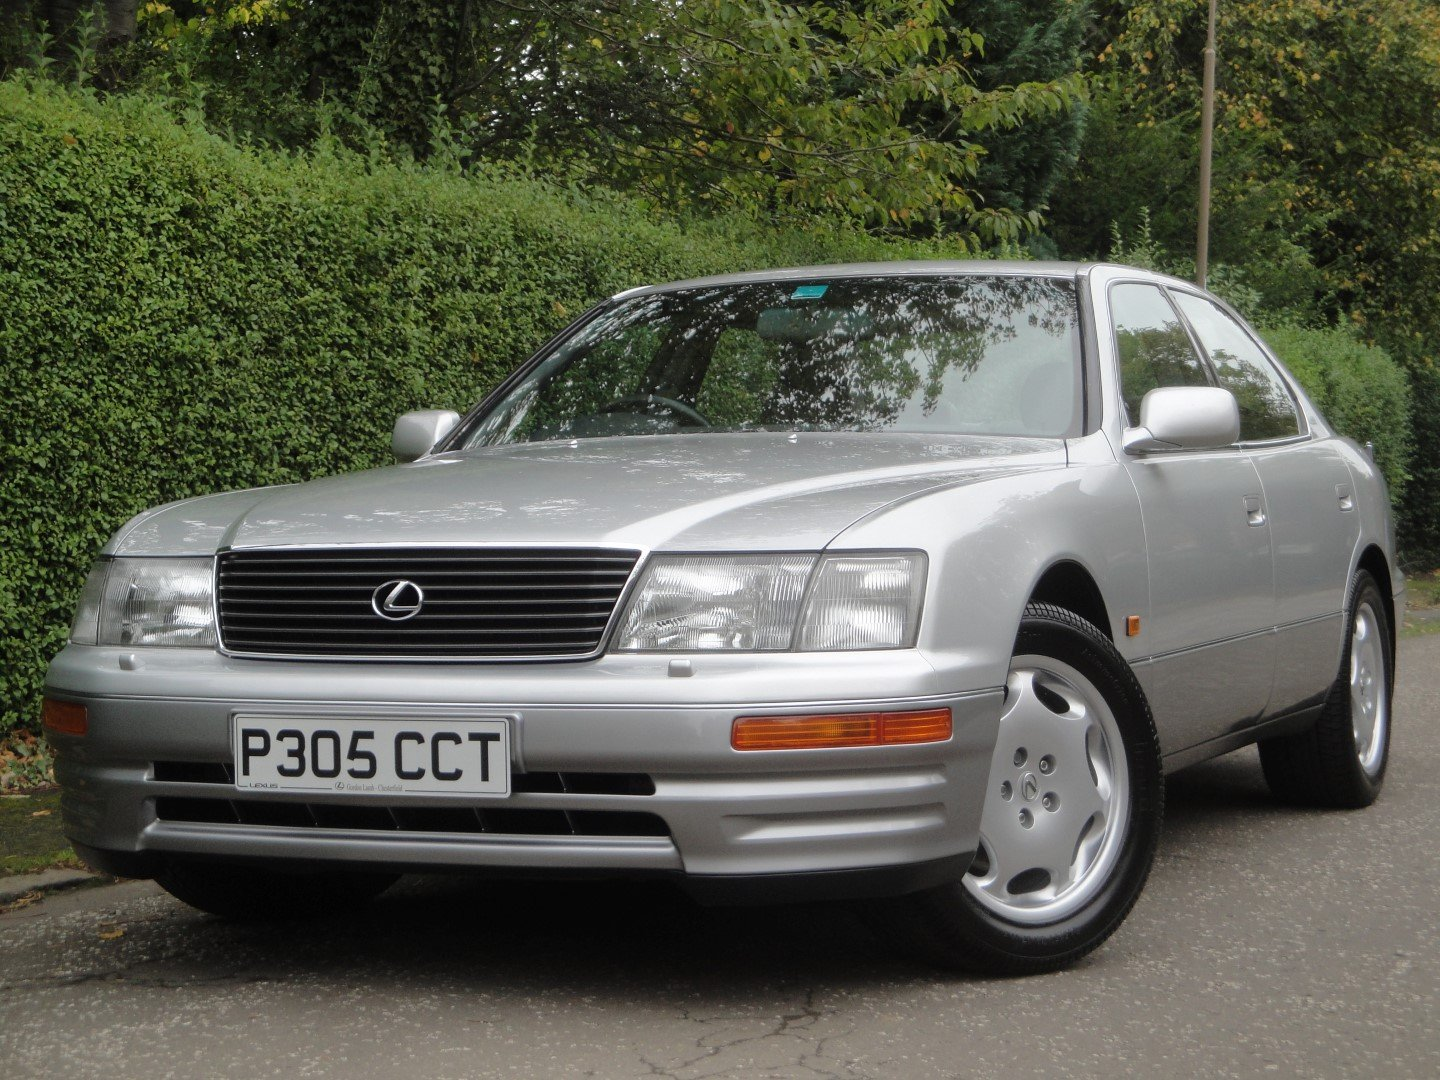 1997 Lexus LS400 Immaculate Low Mileage For Sale (picture 1 of 6)